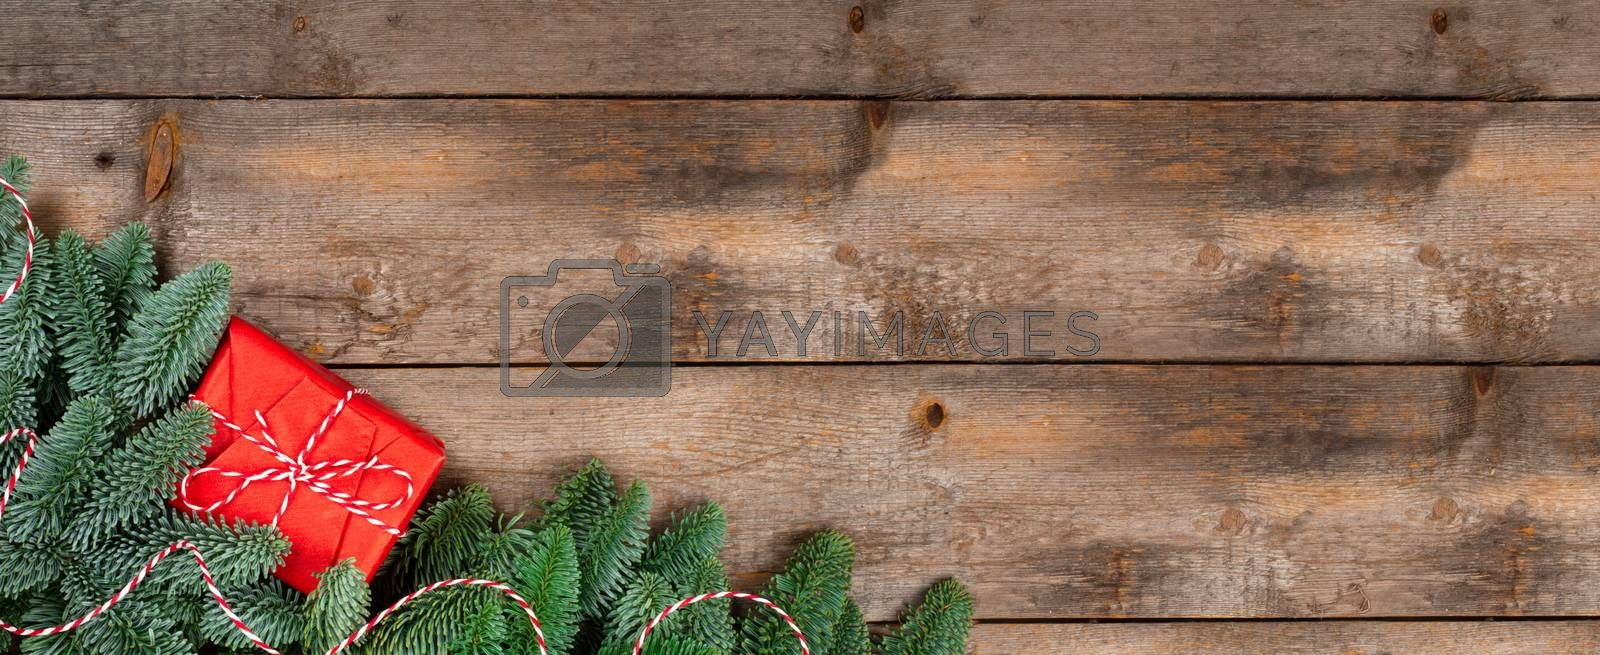 Christmas noble fir tree twigs and gift with red striped ribbon on wooden background with copy space for text